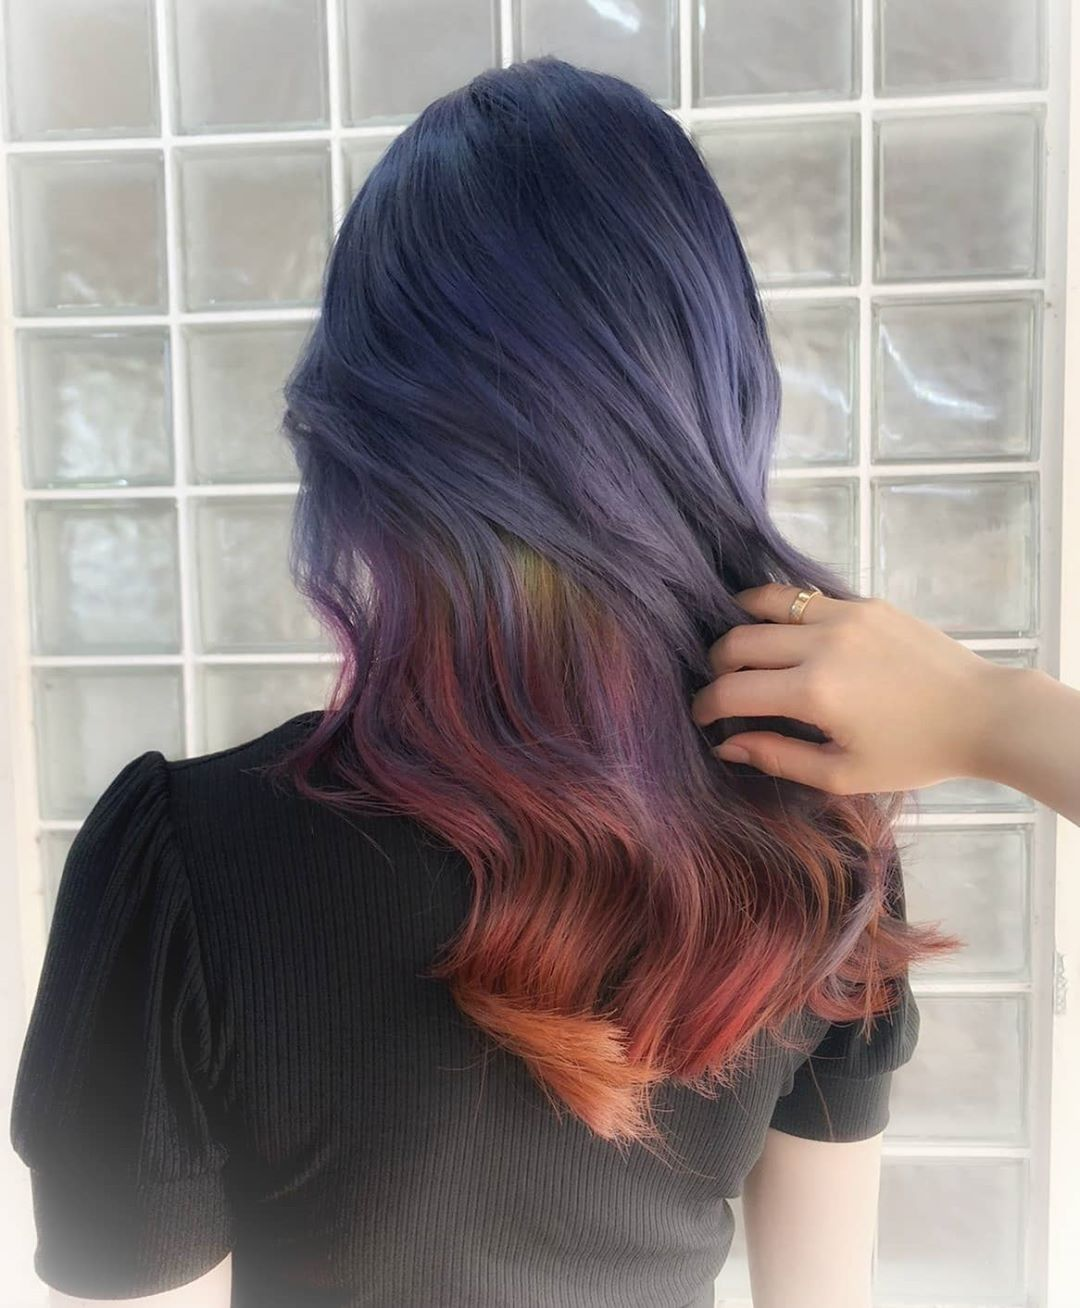 Colour-Rainbow Blue and Red (Emily n Natalie) at Color Bar by Full House Salon